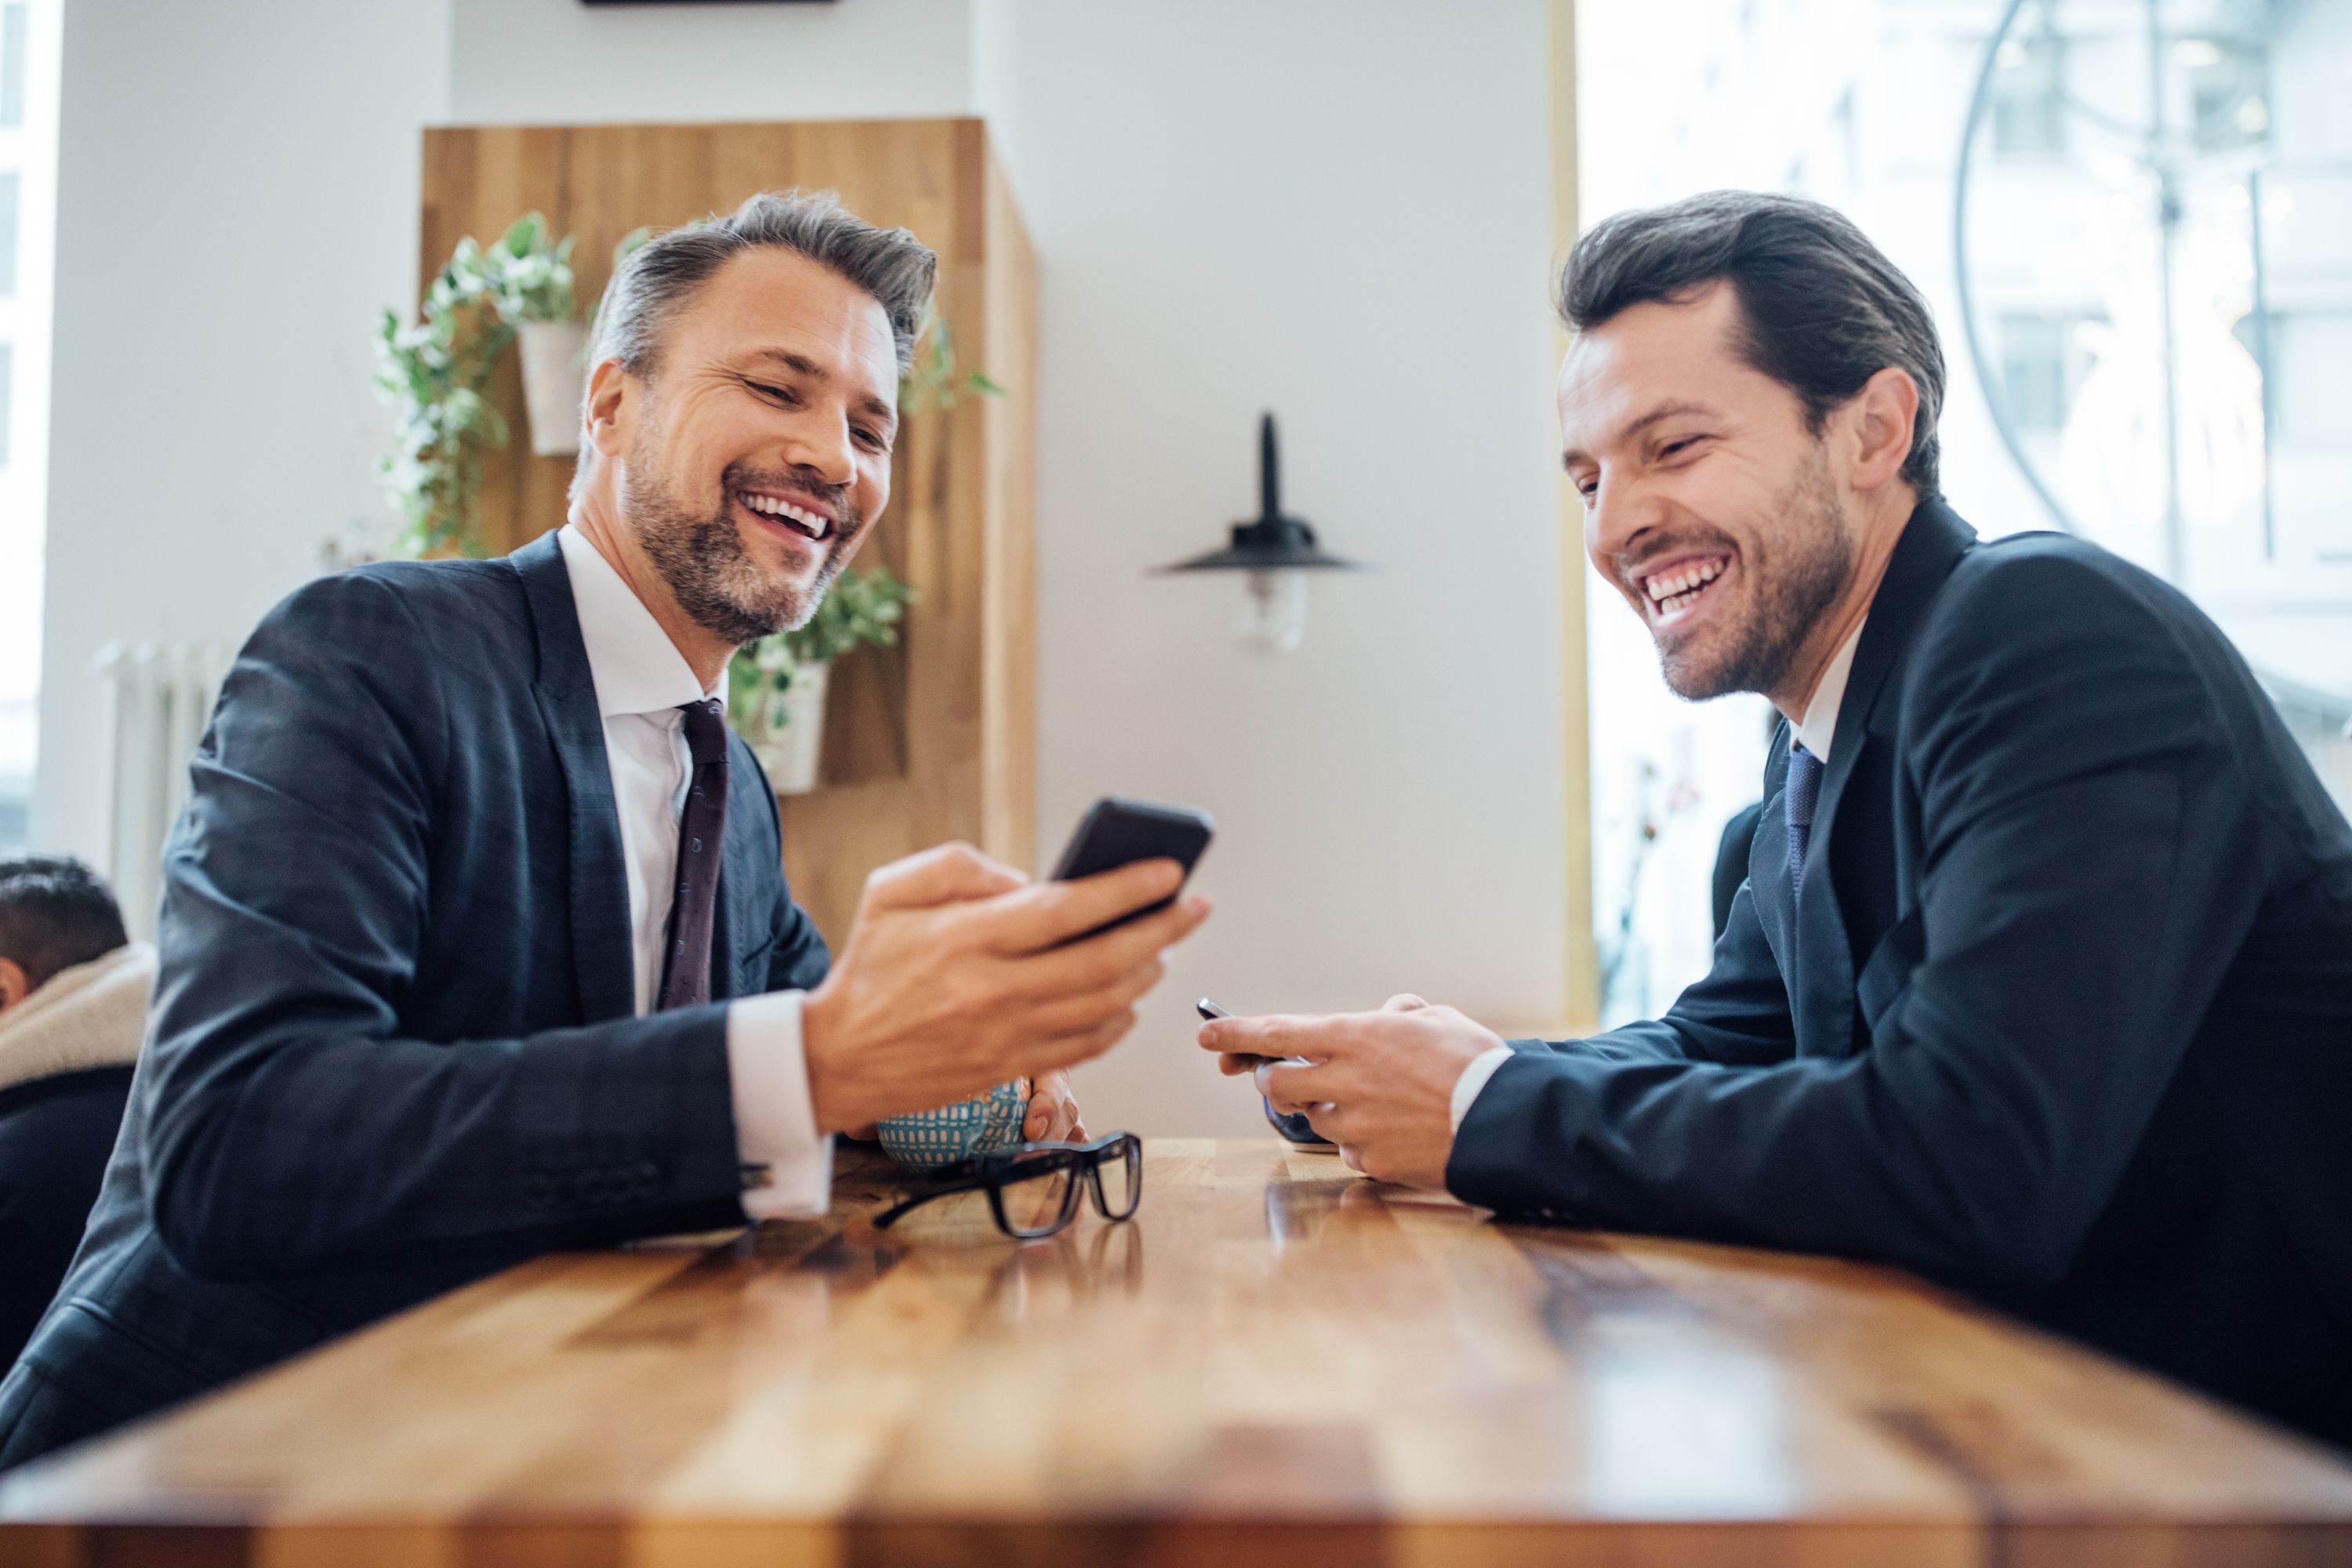 5 things you need to consider when choosing a business partner